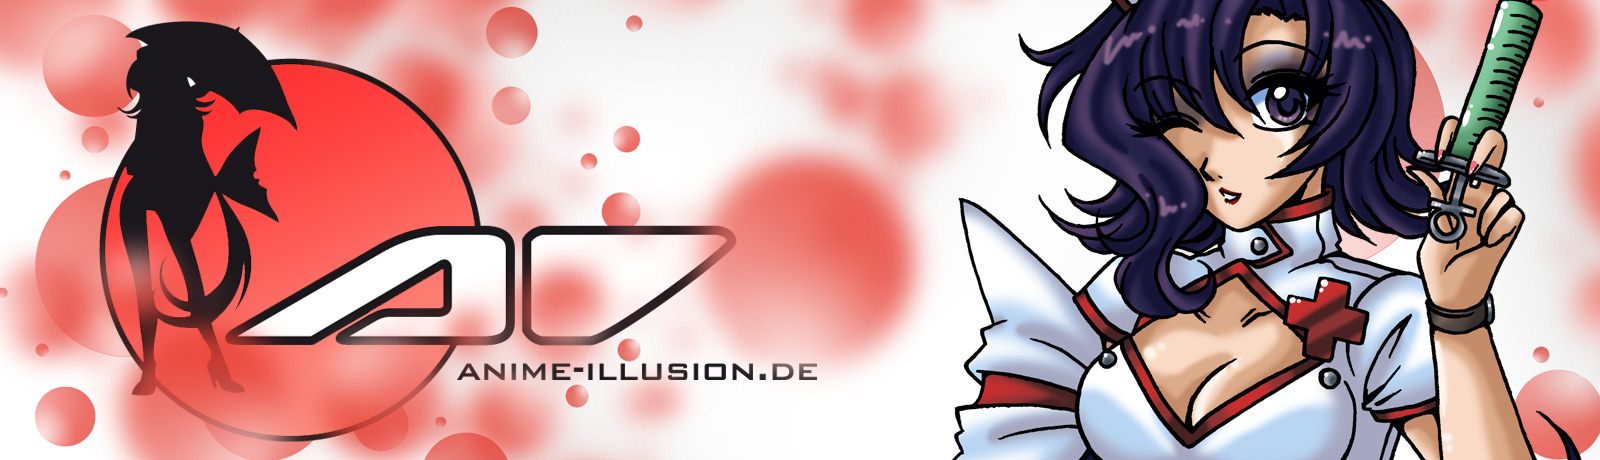 ::[ - Anime Illusion - ]::